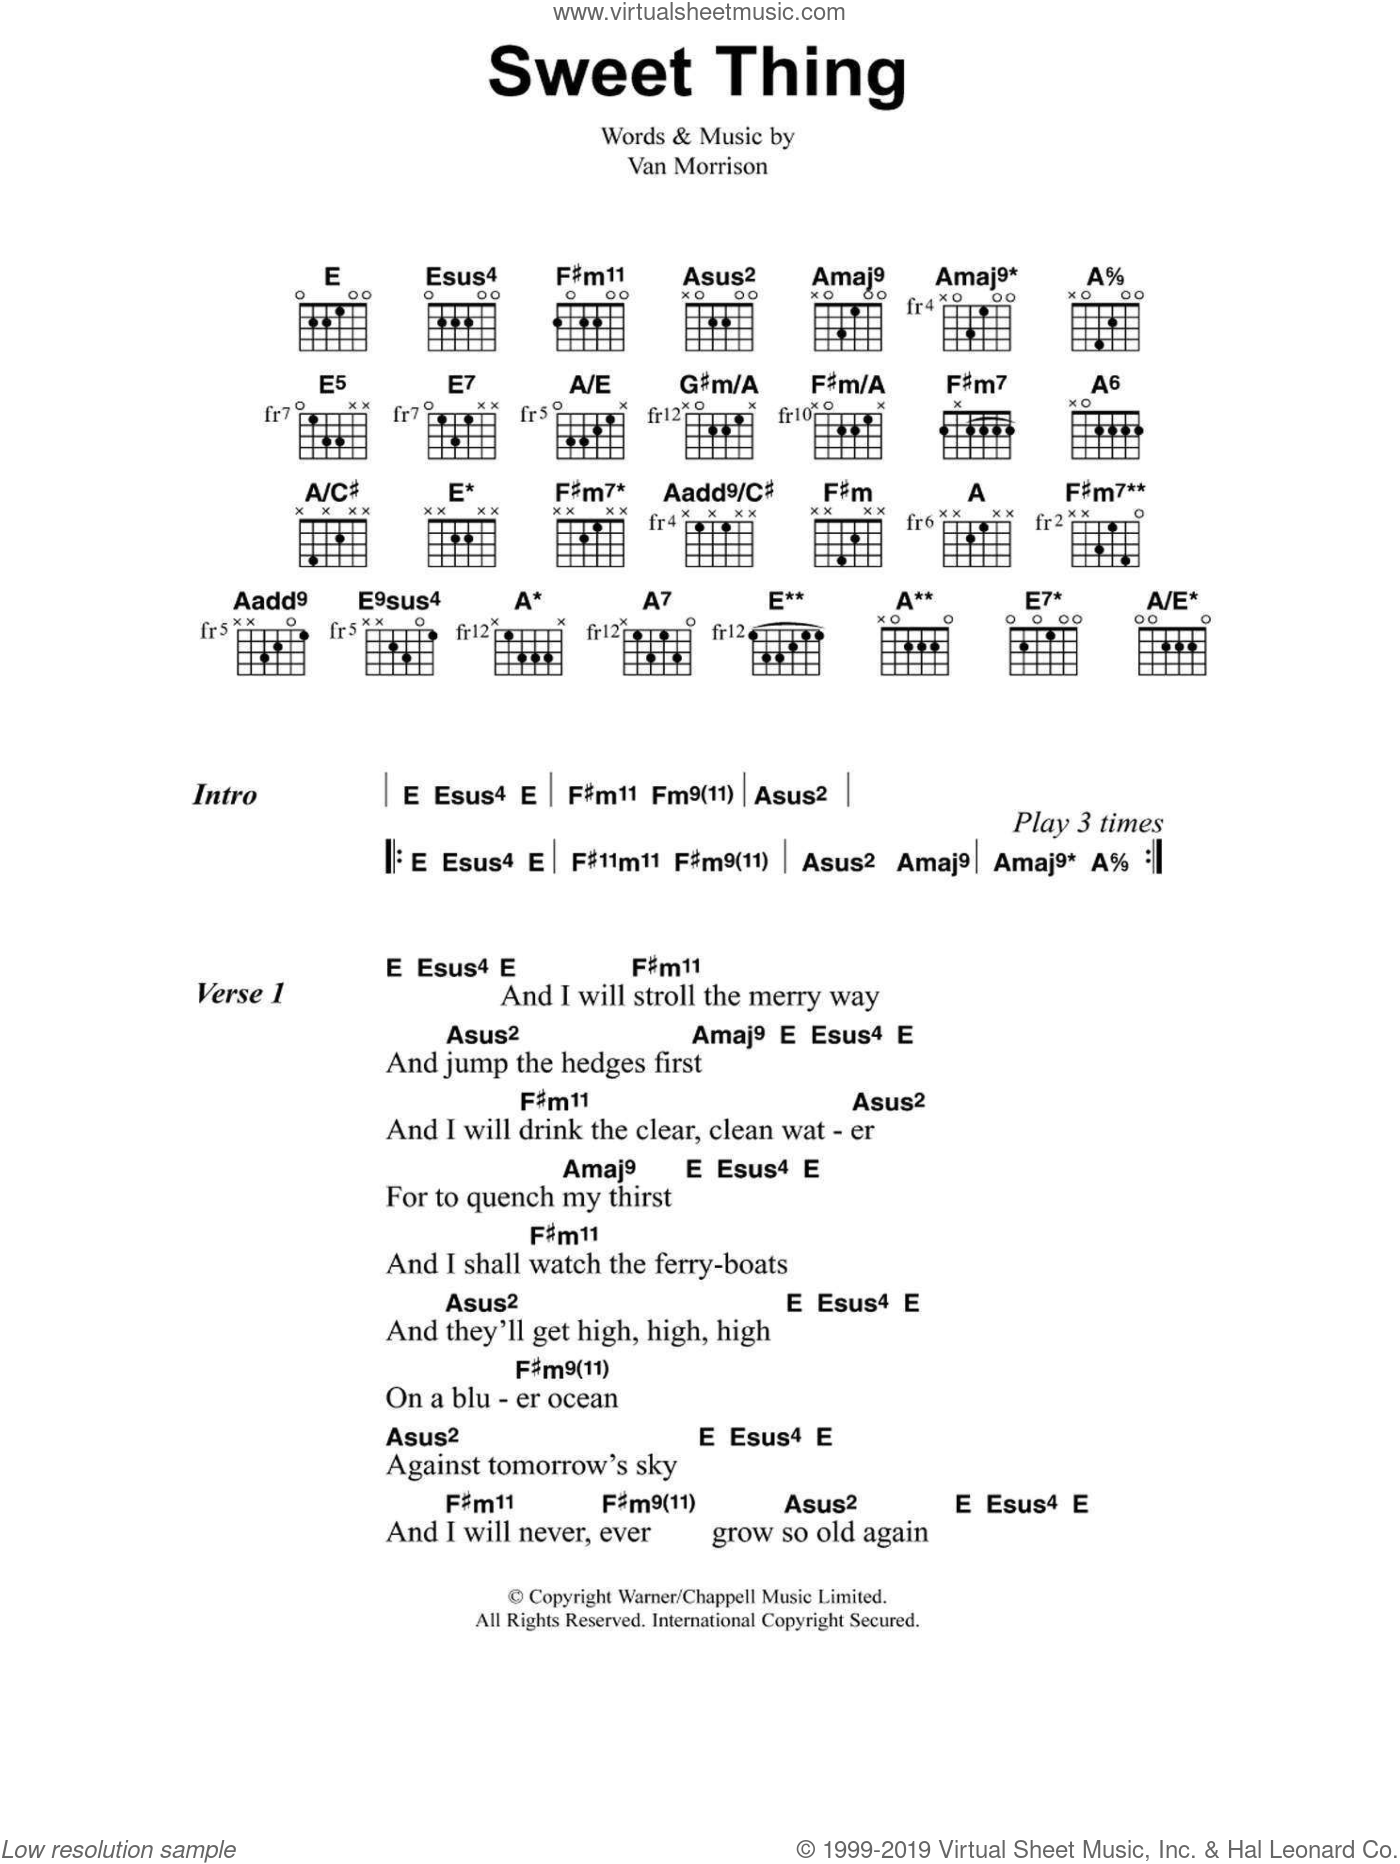 Sweet Thing sheet music for guitar (chords) by Jeff Buckley. Score Image Preview.